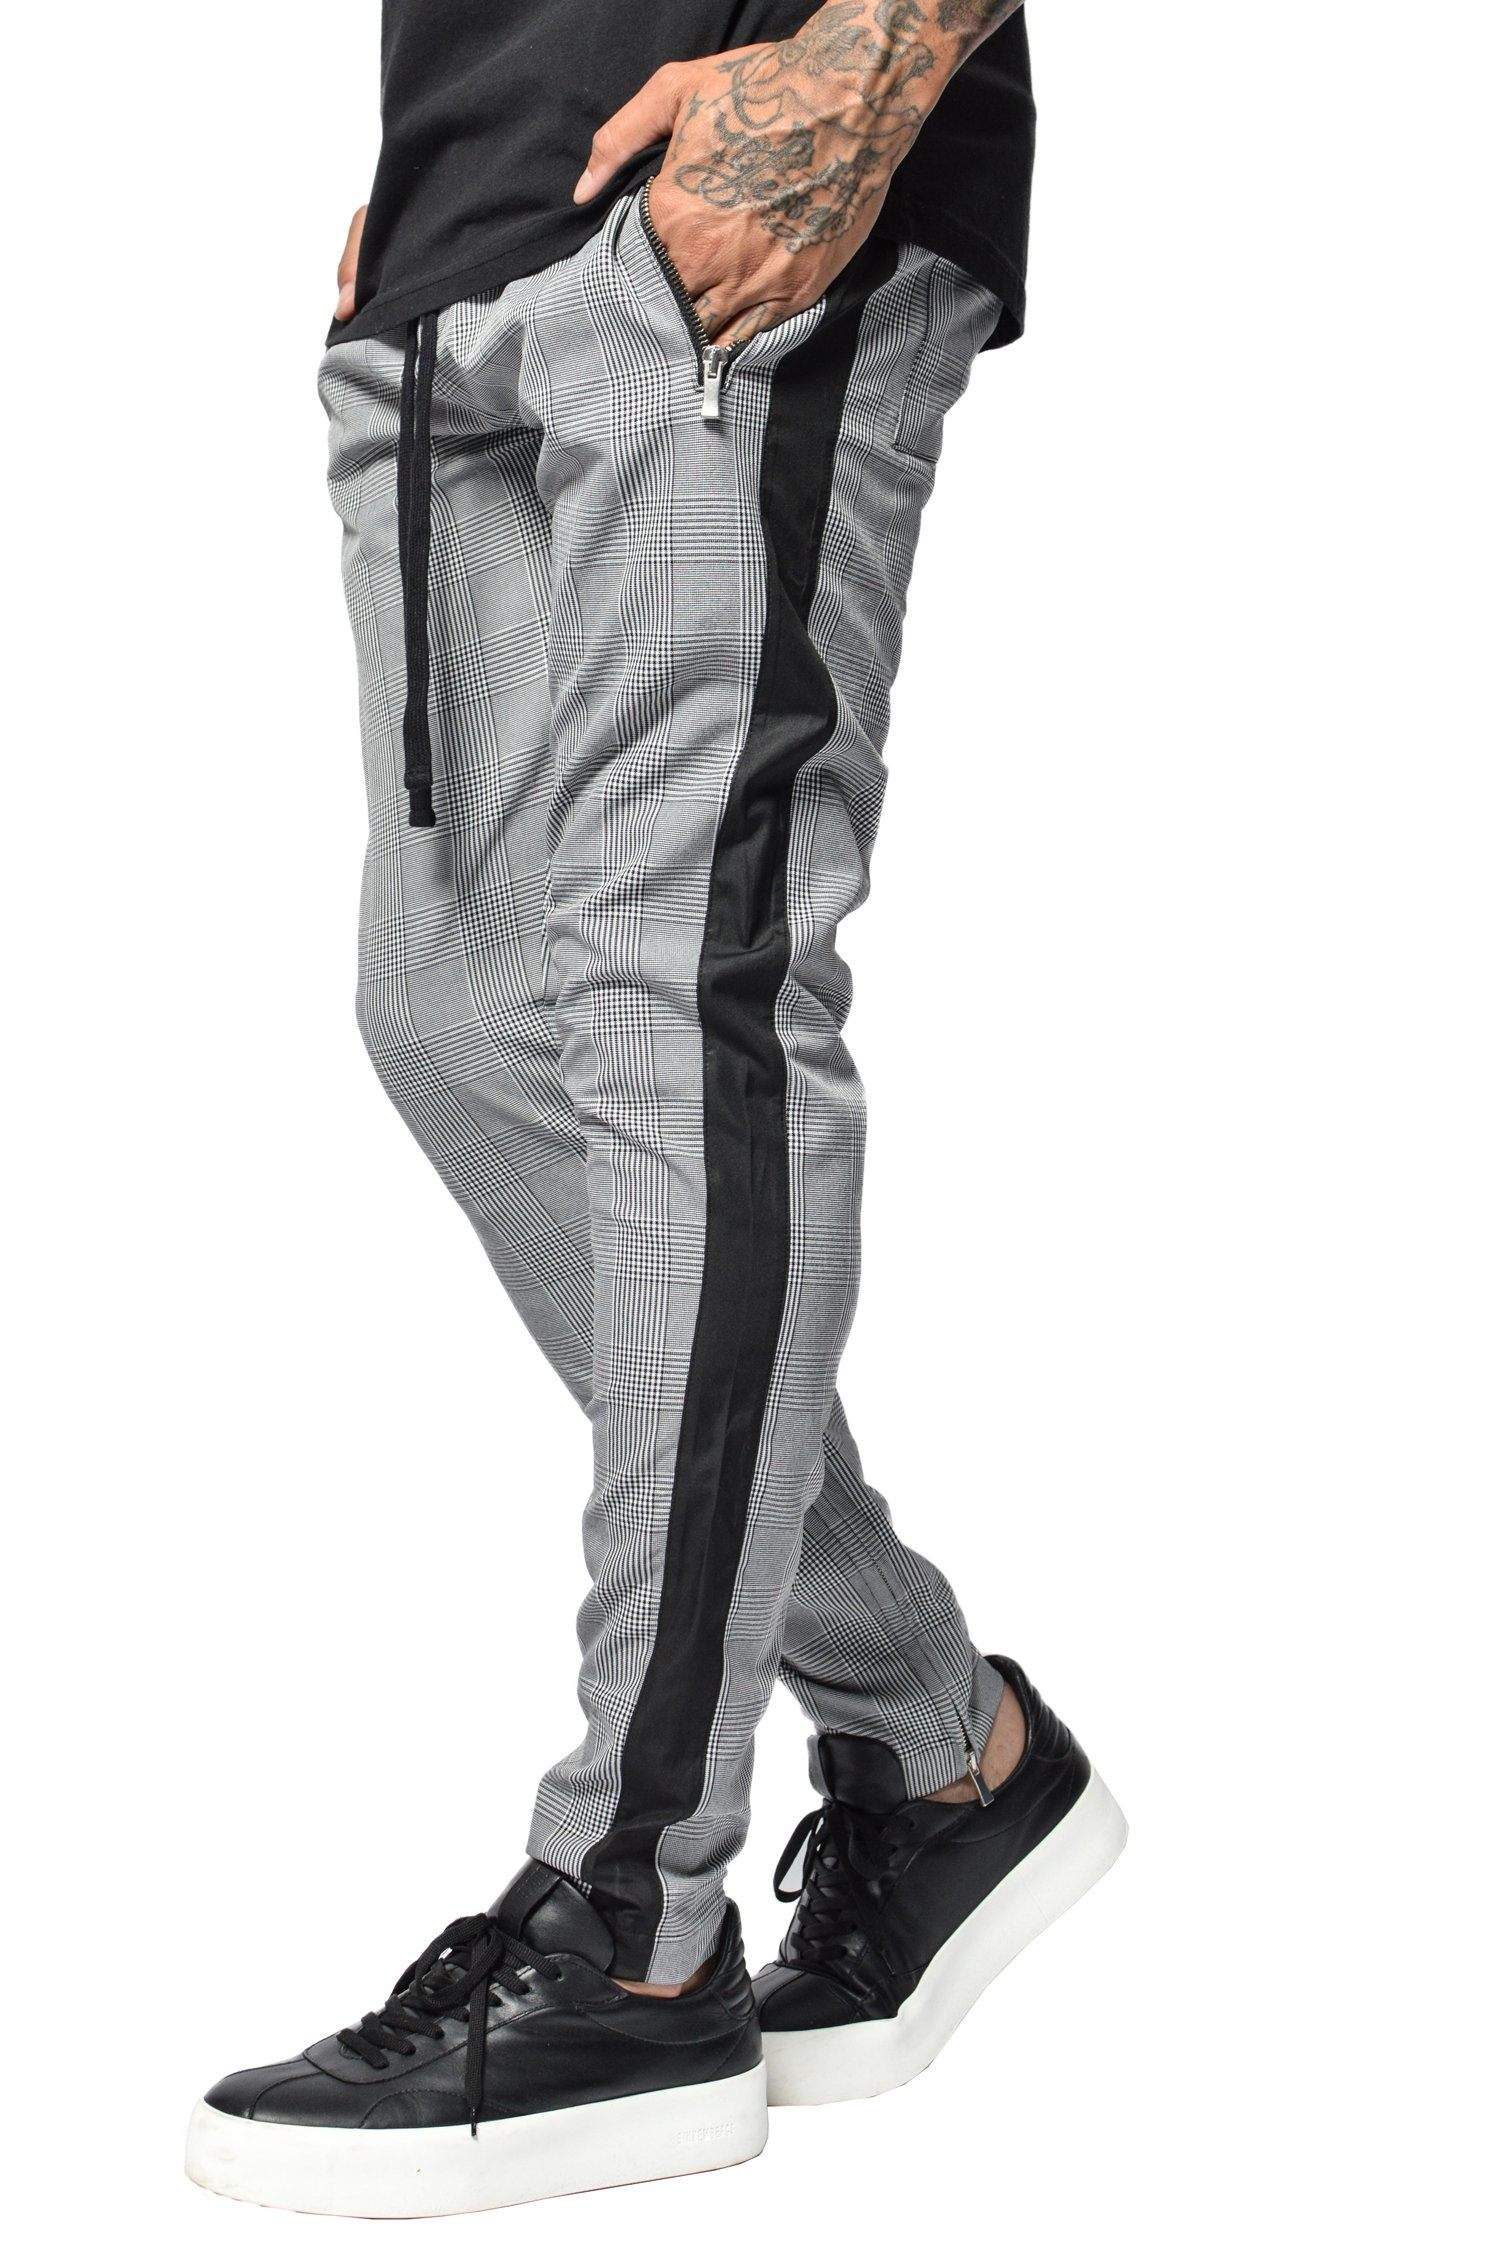 Lucio Trackpants Black/Grey Checkered - PEGADOR - Dominate the Hype